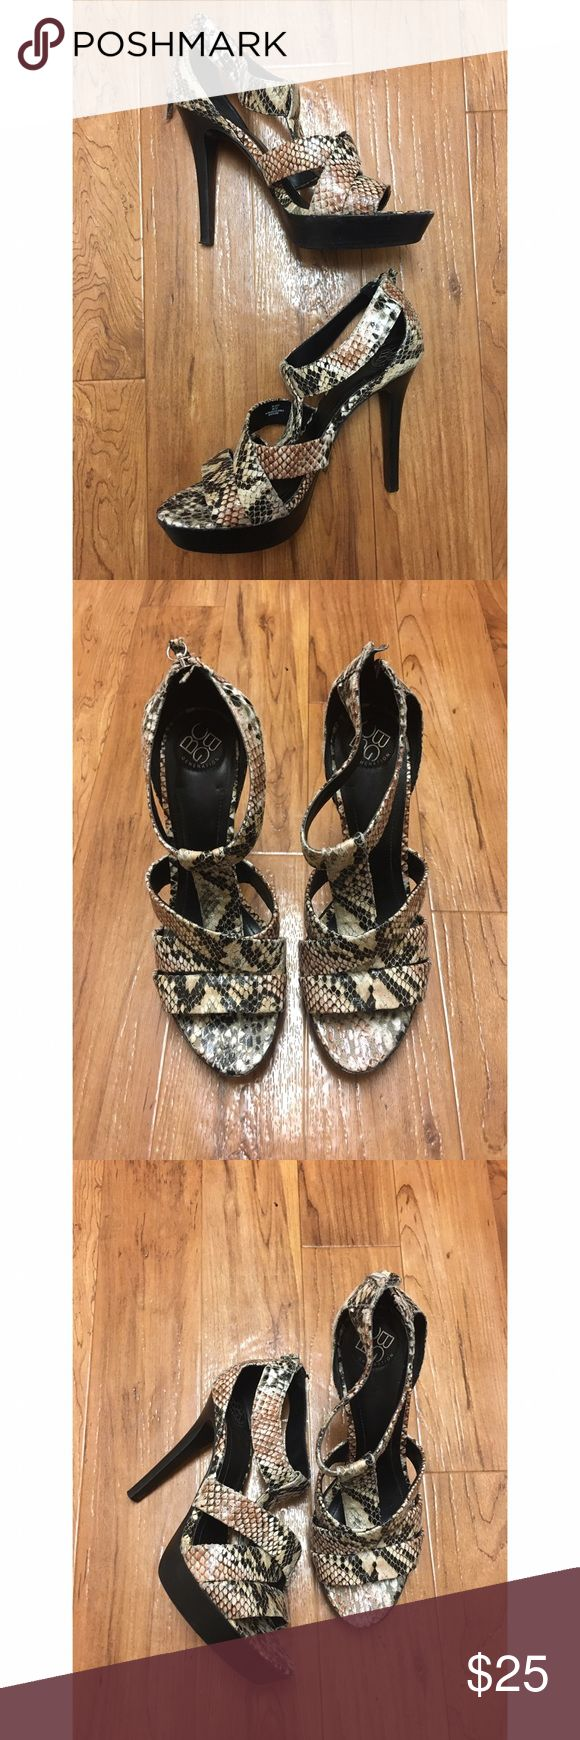 BCBG size 9 snakeskin heels Straps size 9 snakeskin heels by BCBG. Only worn a couple times with no flaws at all! Super cute and comfortable. These lasts the whole night out at the club without your feet killing you at the end of the night. Zips in the back. BCBGeneration Shoes Heels